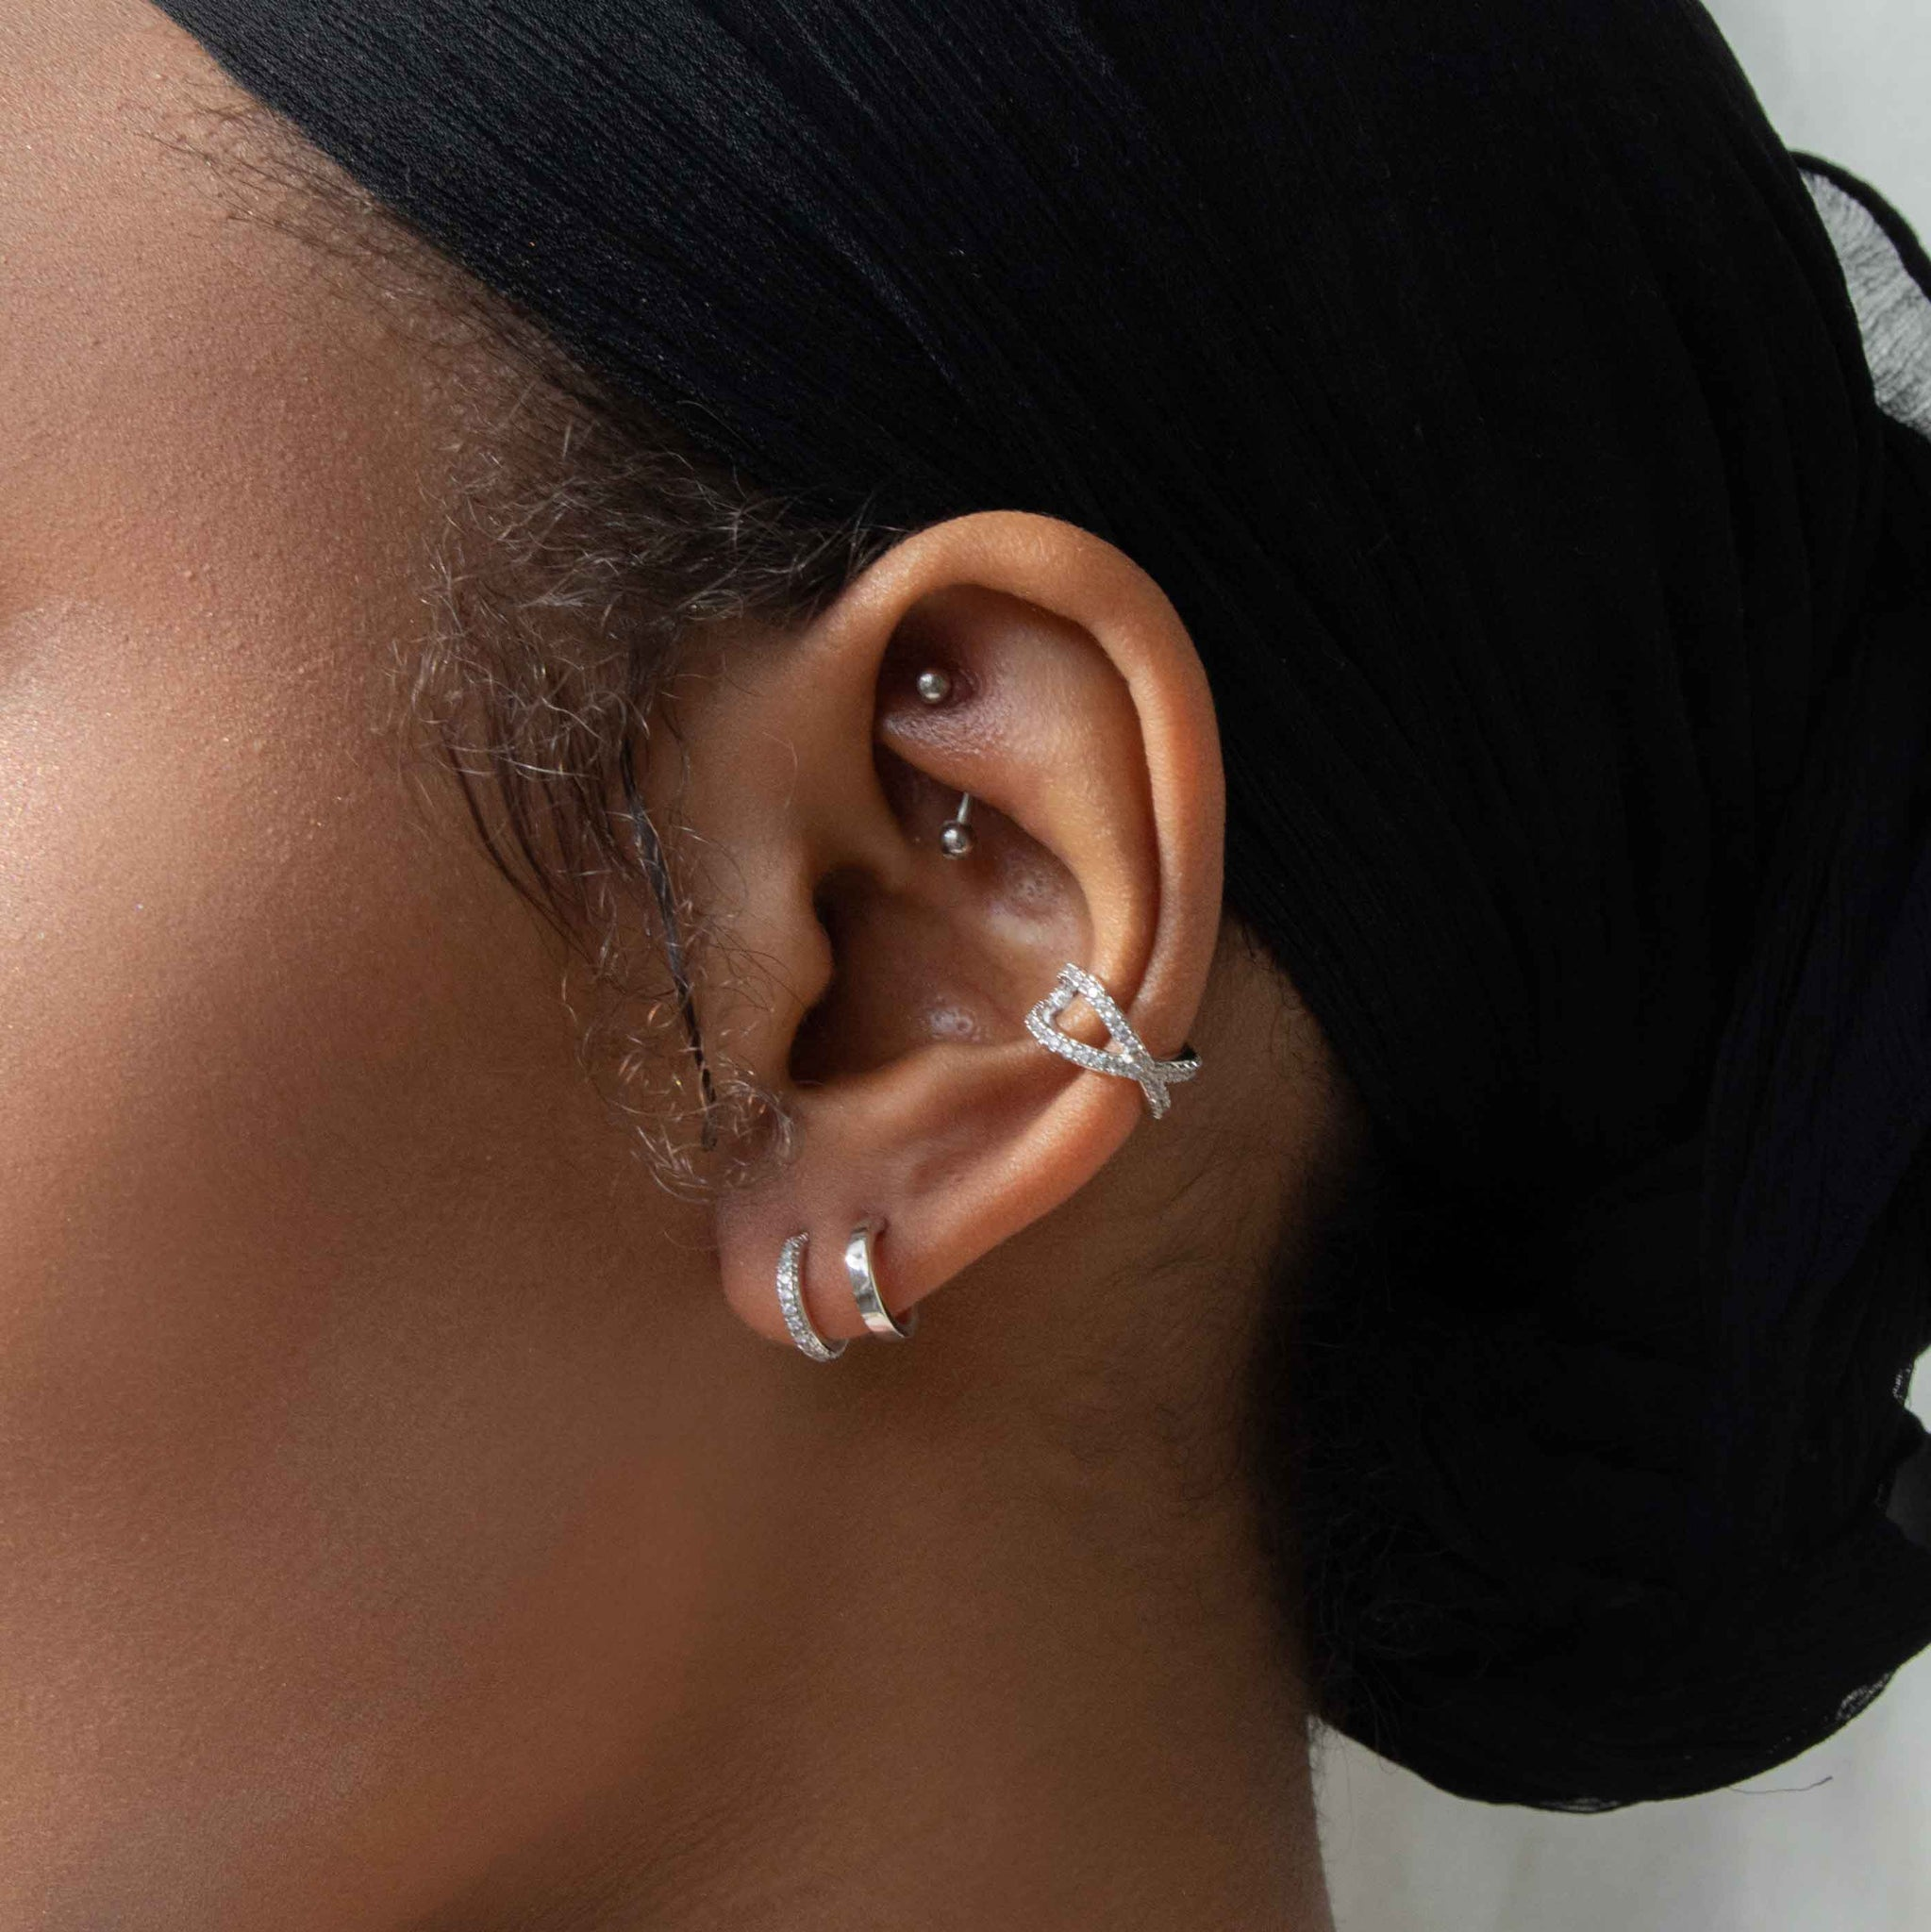 Illusion Stud Earrings in Silver worn with ear cuff